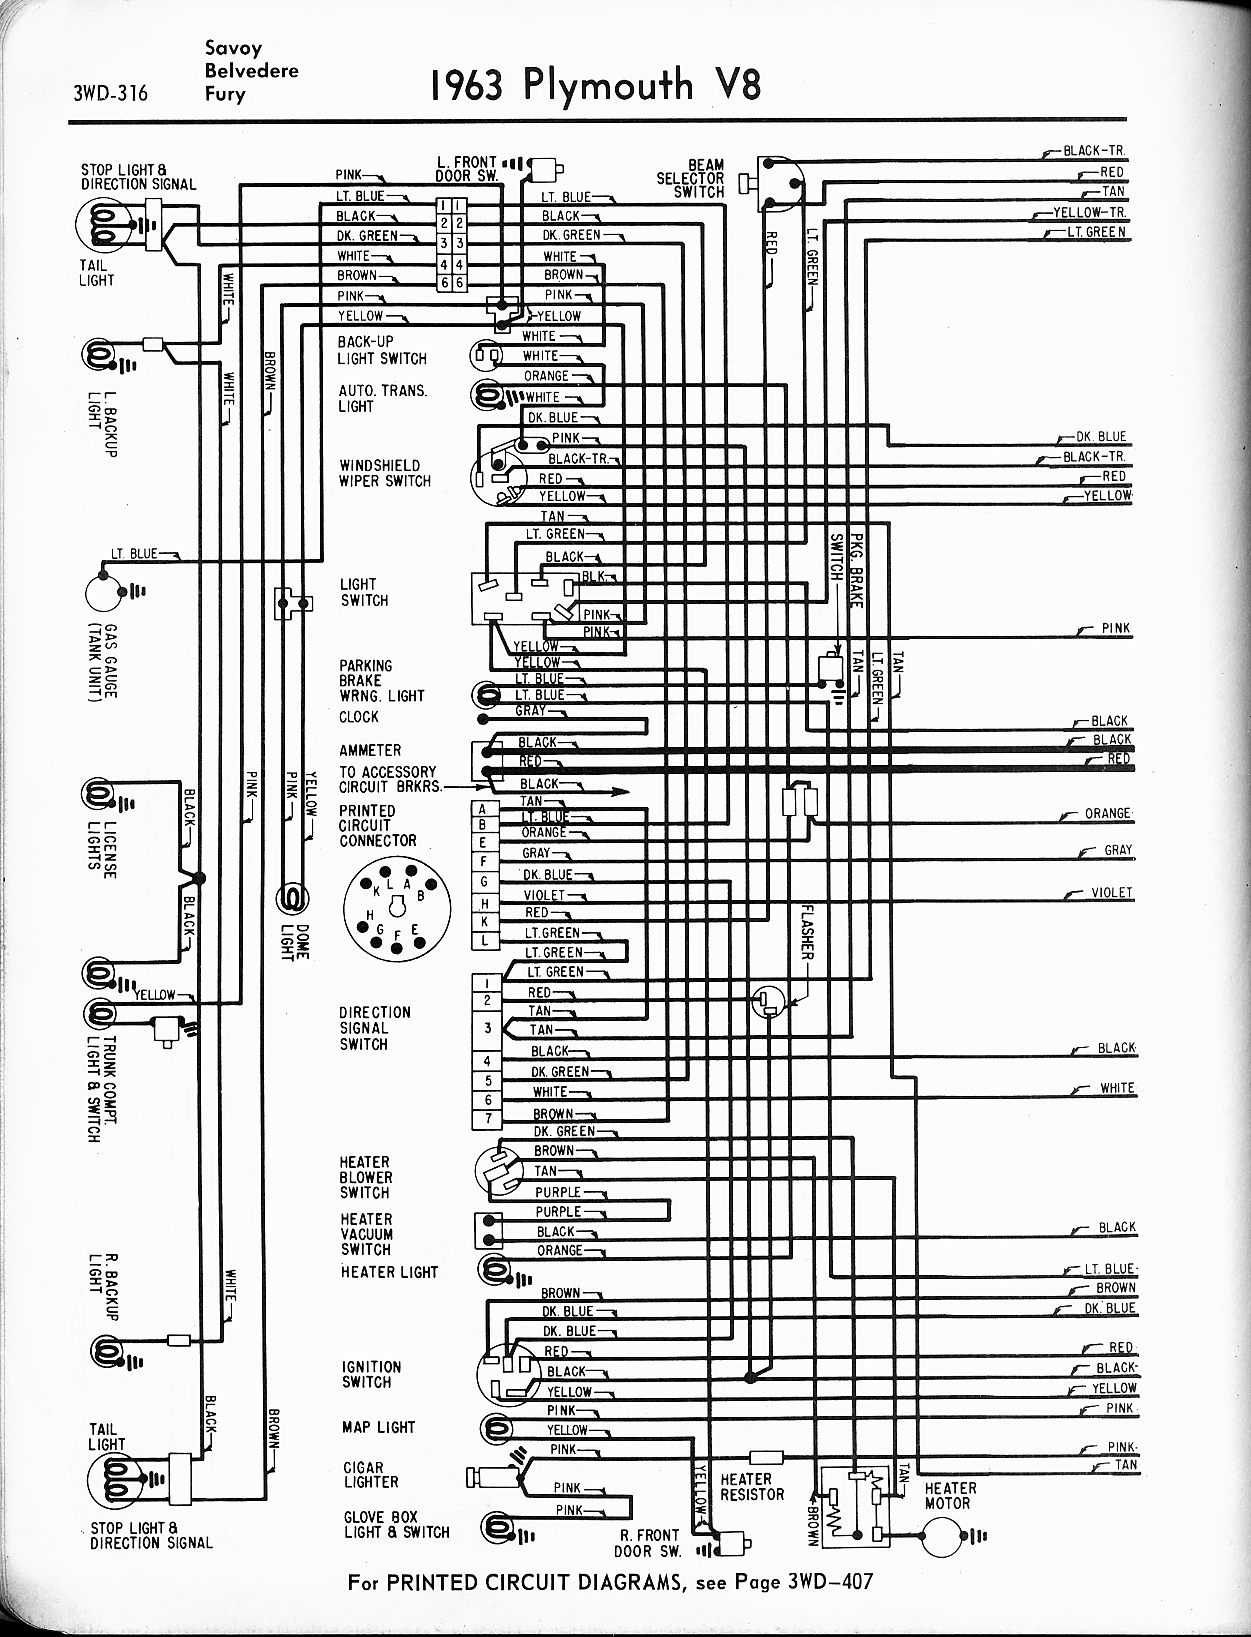 MWire5765 316 3800 series 2 wiring diagram gm ecu pinout \u2022 wiring diagrams j free pontiac wiring diagrams at webbmarketing.co